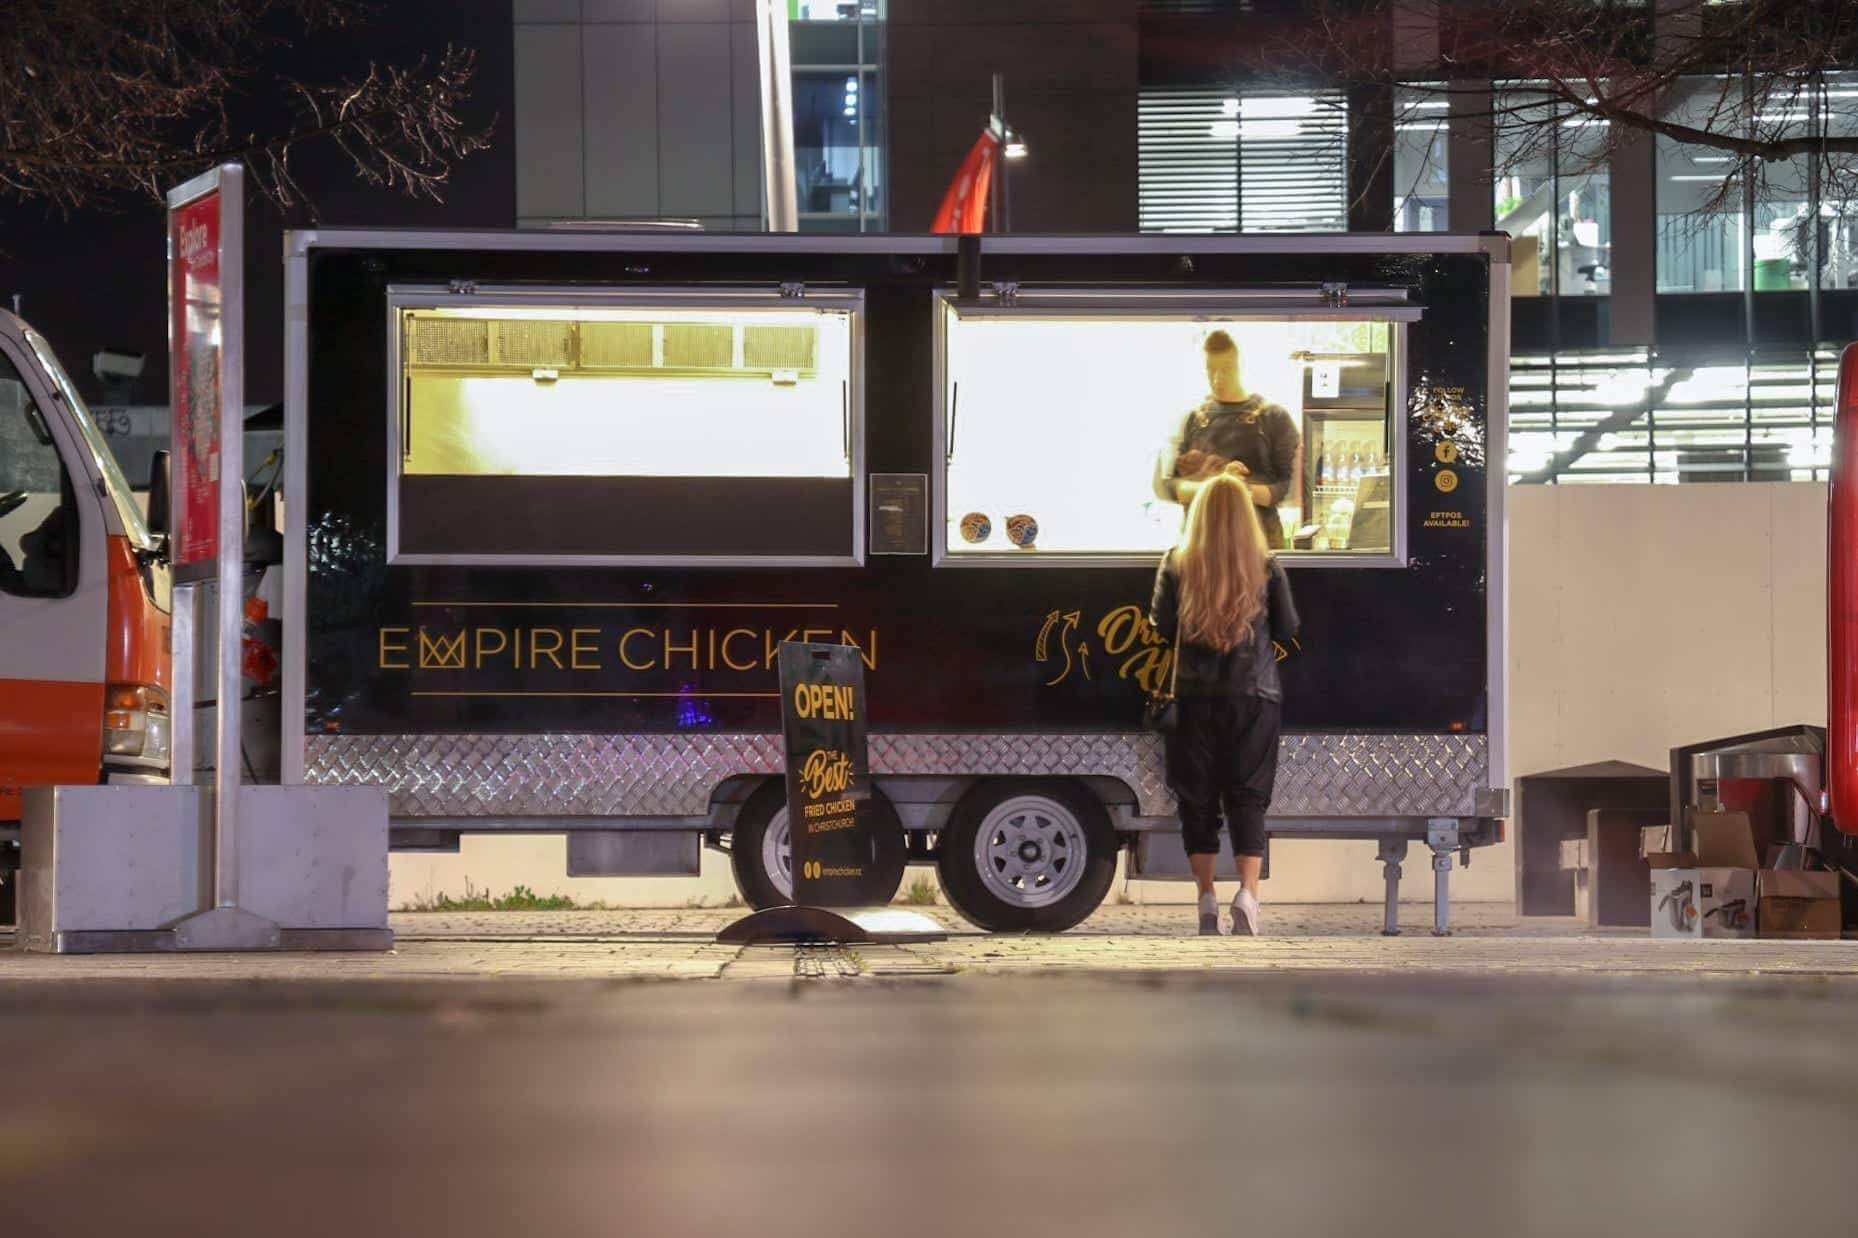 Empire Chicken